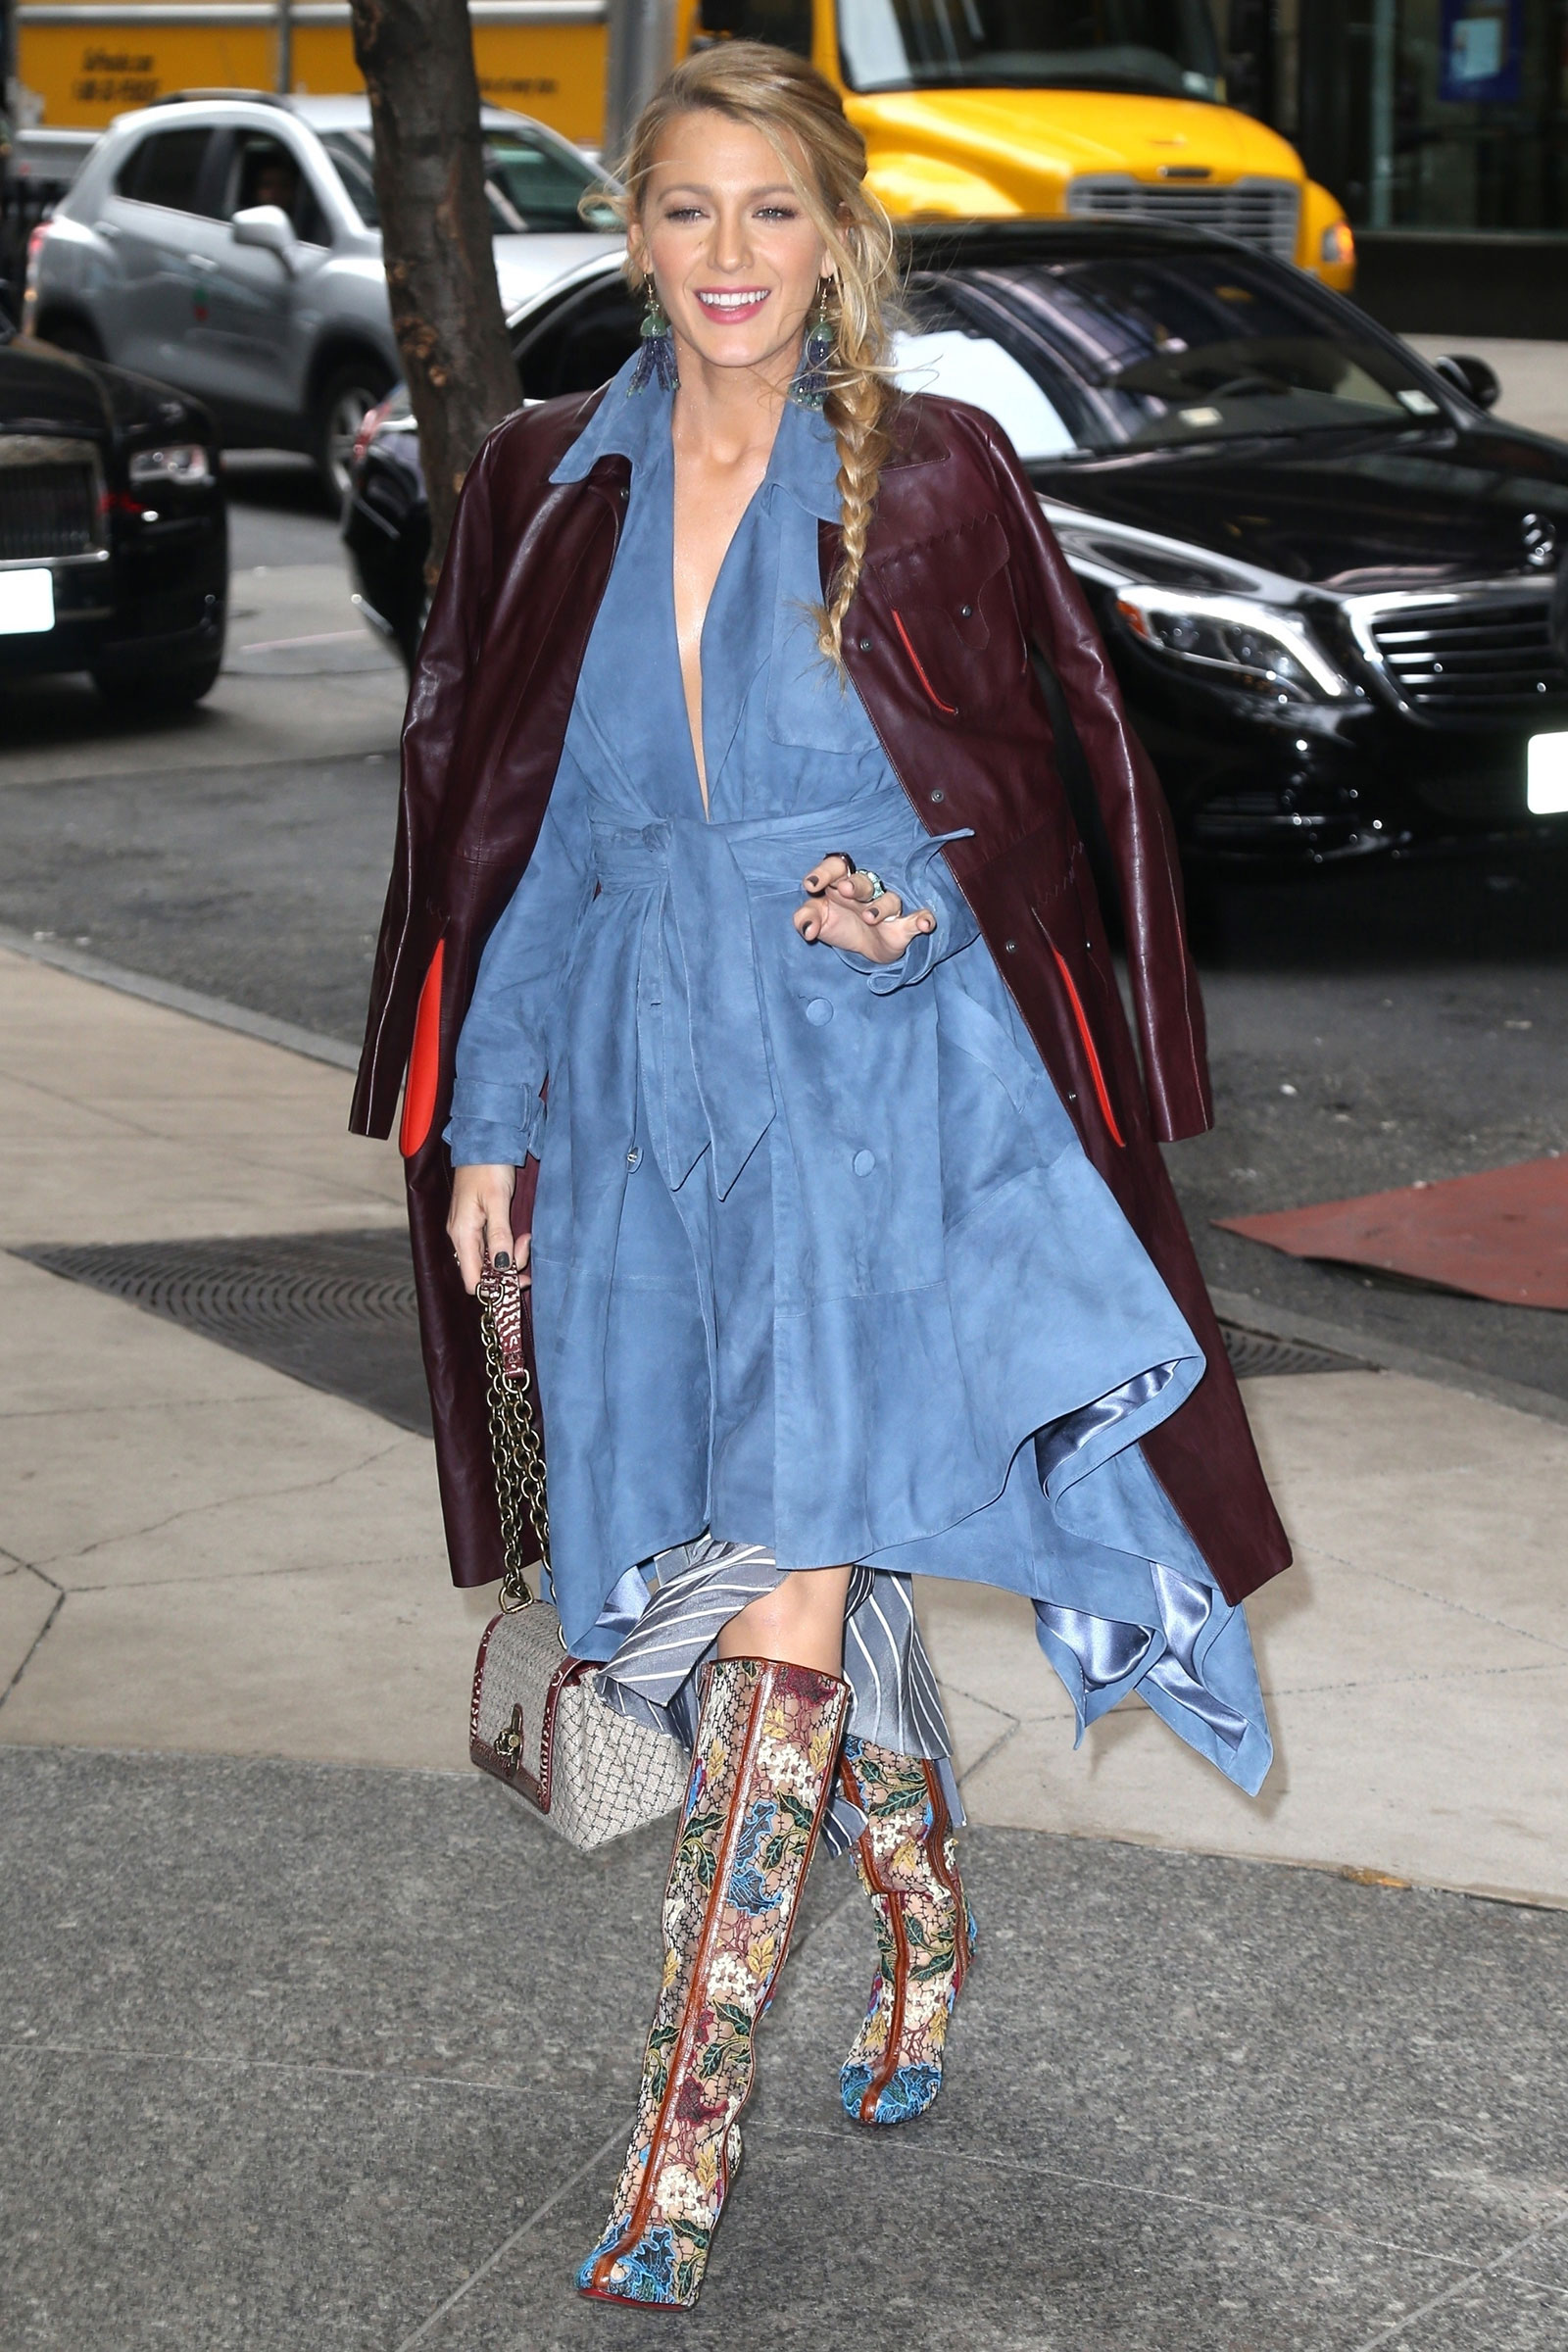 5a1bdff5a742c Blake Lively s Denim Blue Dress and Embroidered Boots - The Budget ...